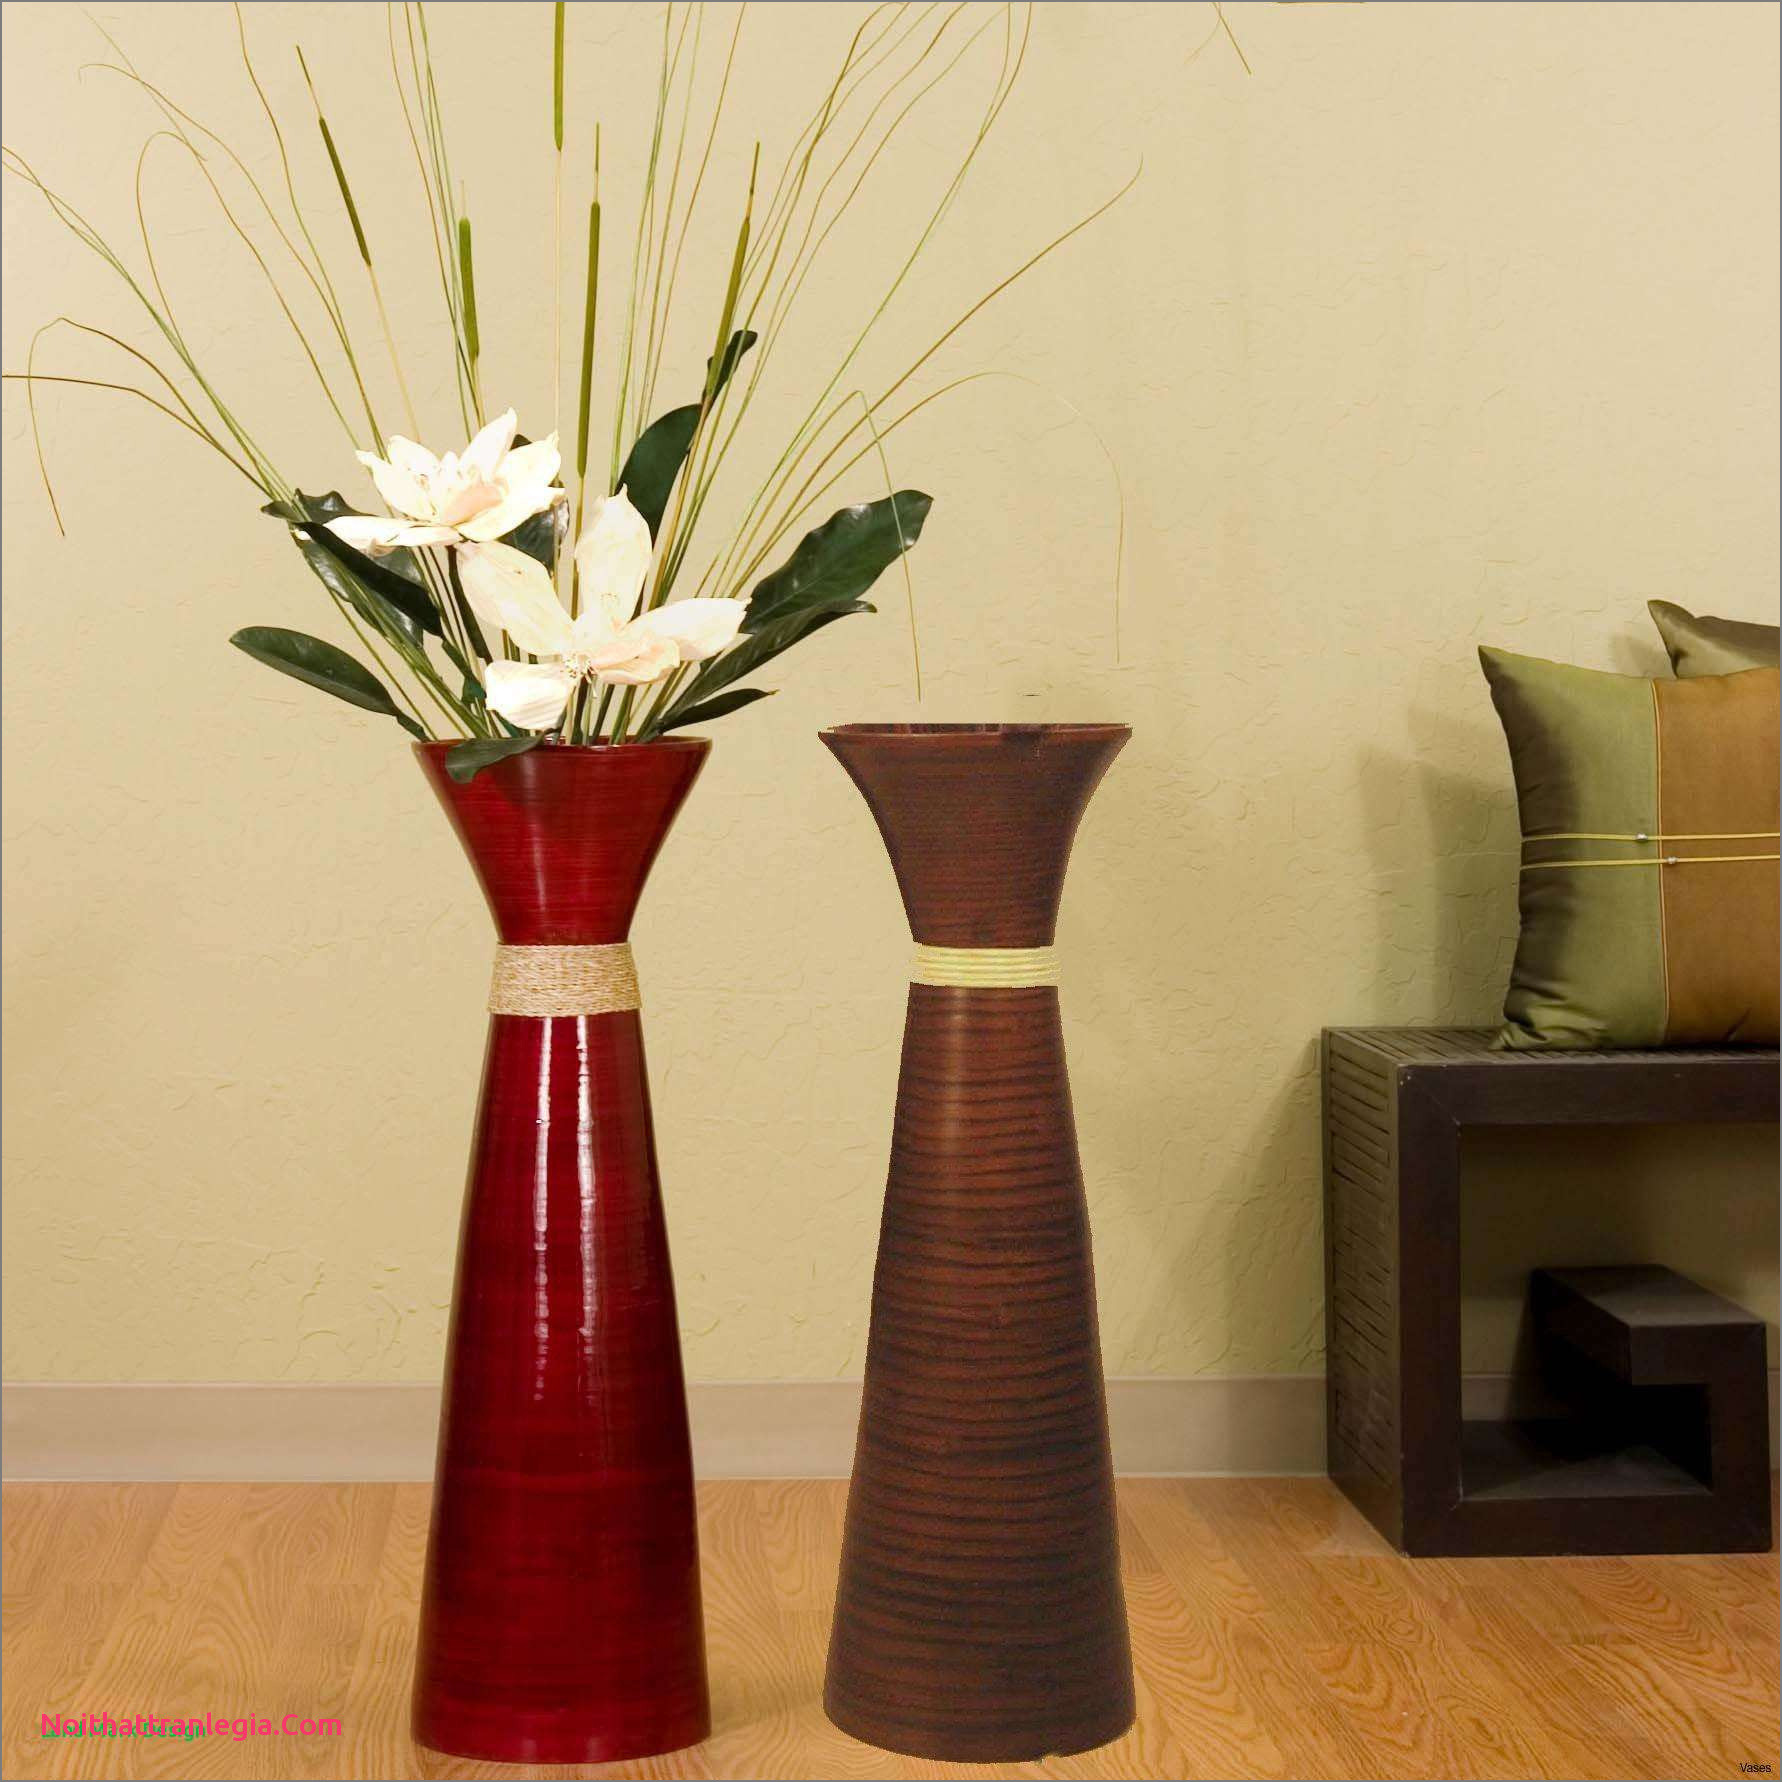 30 Stunning 36 Inch Eiffel tower Vases 2021 free download 36 inch eiffel tower vases of 20 large floor vase nz noithattranlegia vases design inside full size of living room wooden vase best of vases flower floor vase with flowersi large